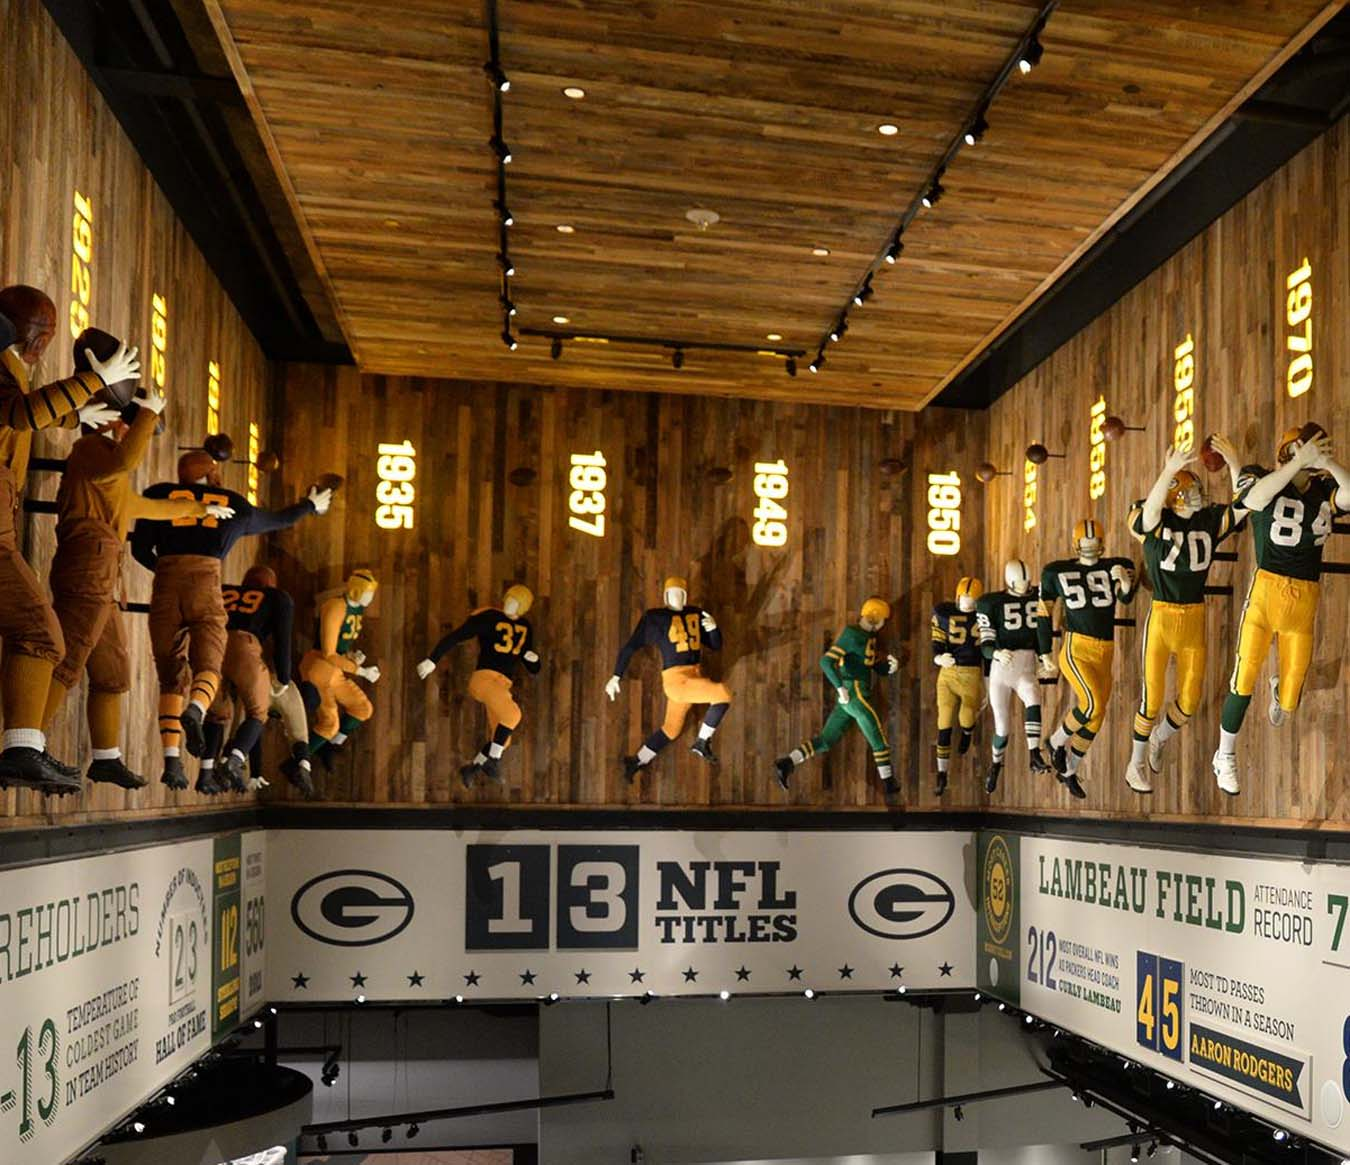 Things to Do in Green Bay - Green Bay Packers Hall of Fame